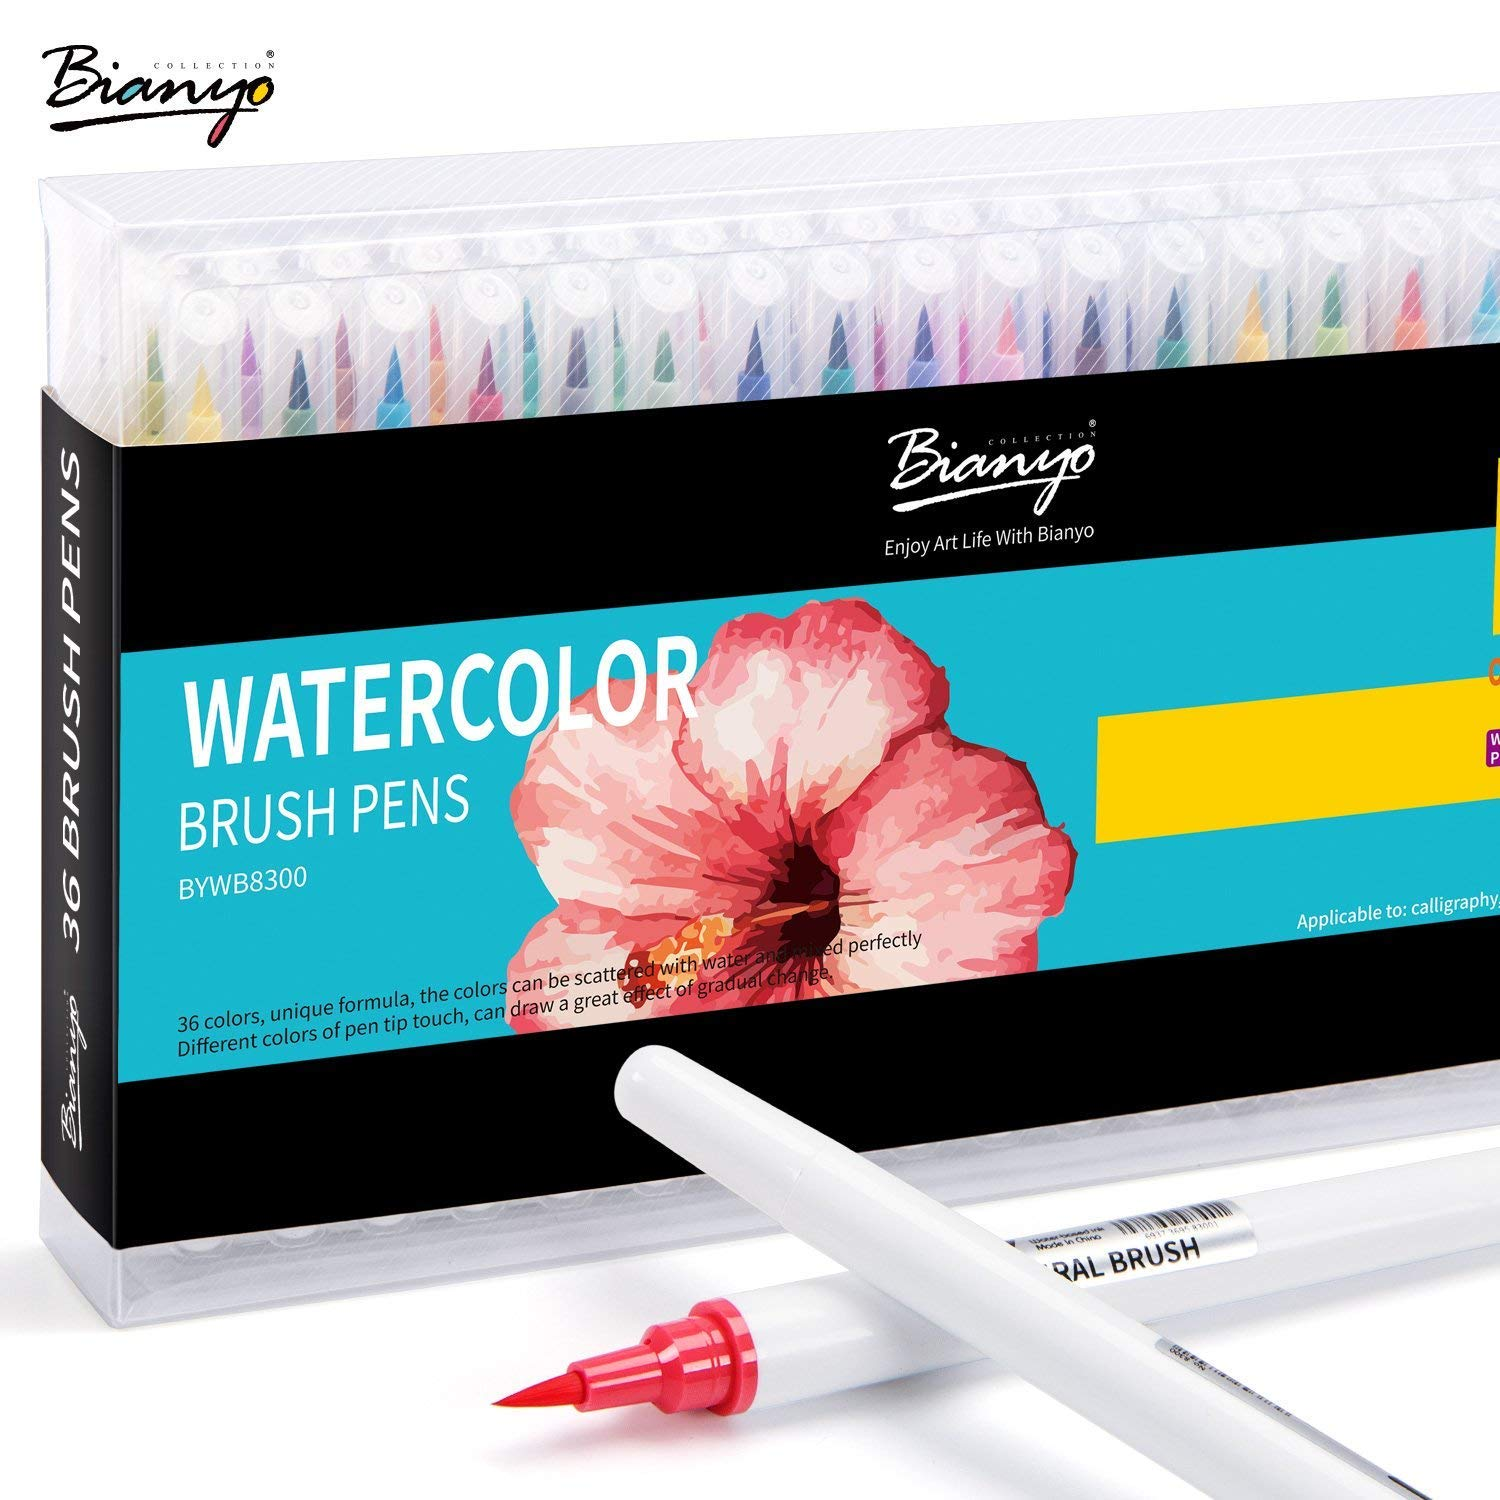 Bianyo Premium Watercolor Brush Pens Set-Soft Flexible Tip, Durable,Create Watercolor Effect - Best for Painting, Drawing, Coloring & More, 100% Nontoxic, Multiple Colors (36 Color)